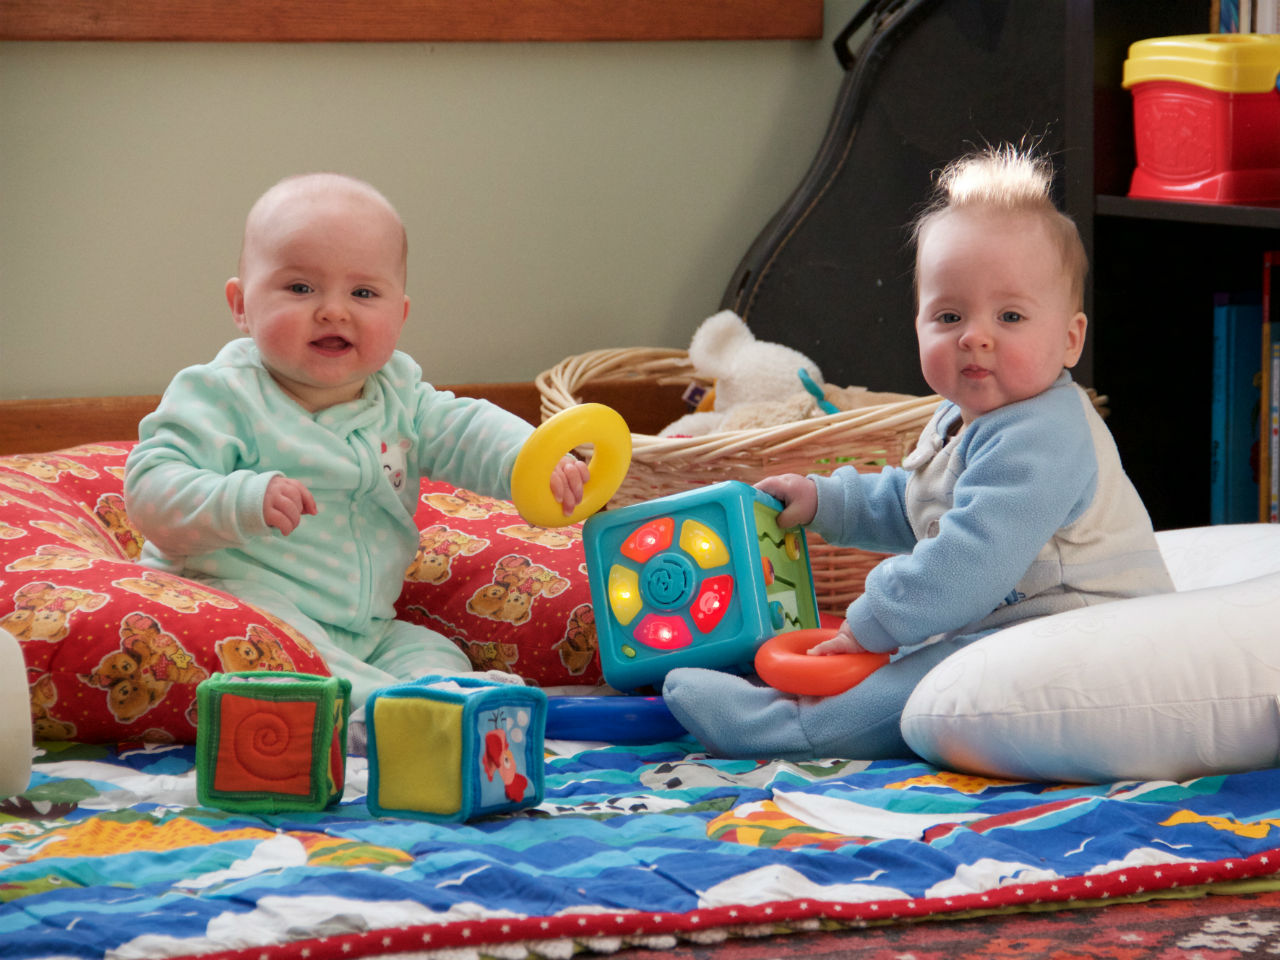 Twin Baby Girls Playing Together